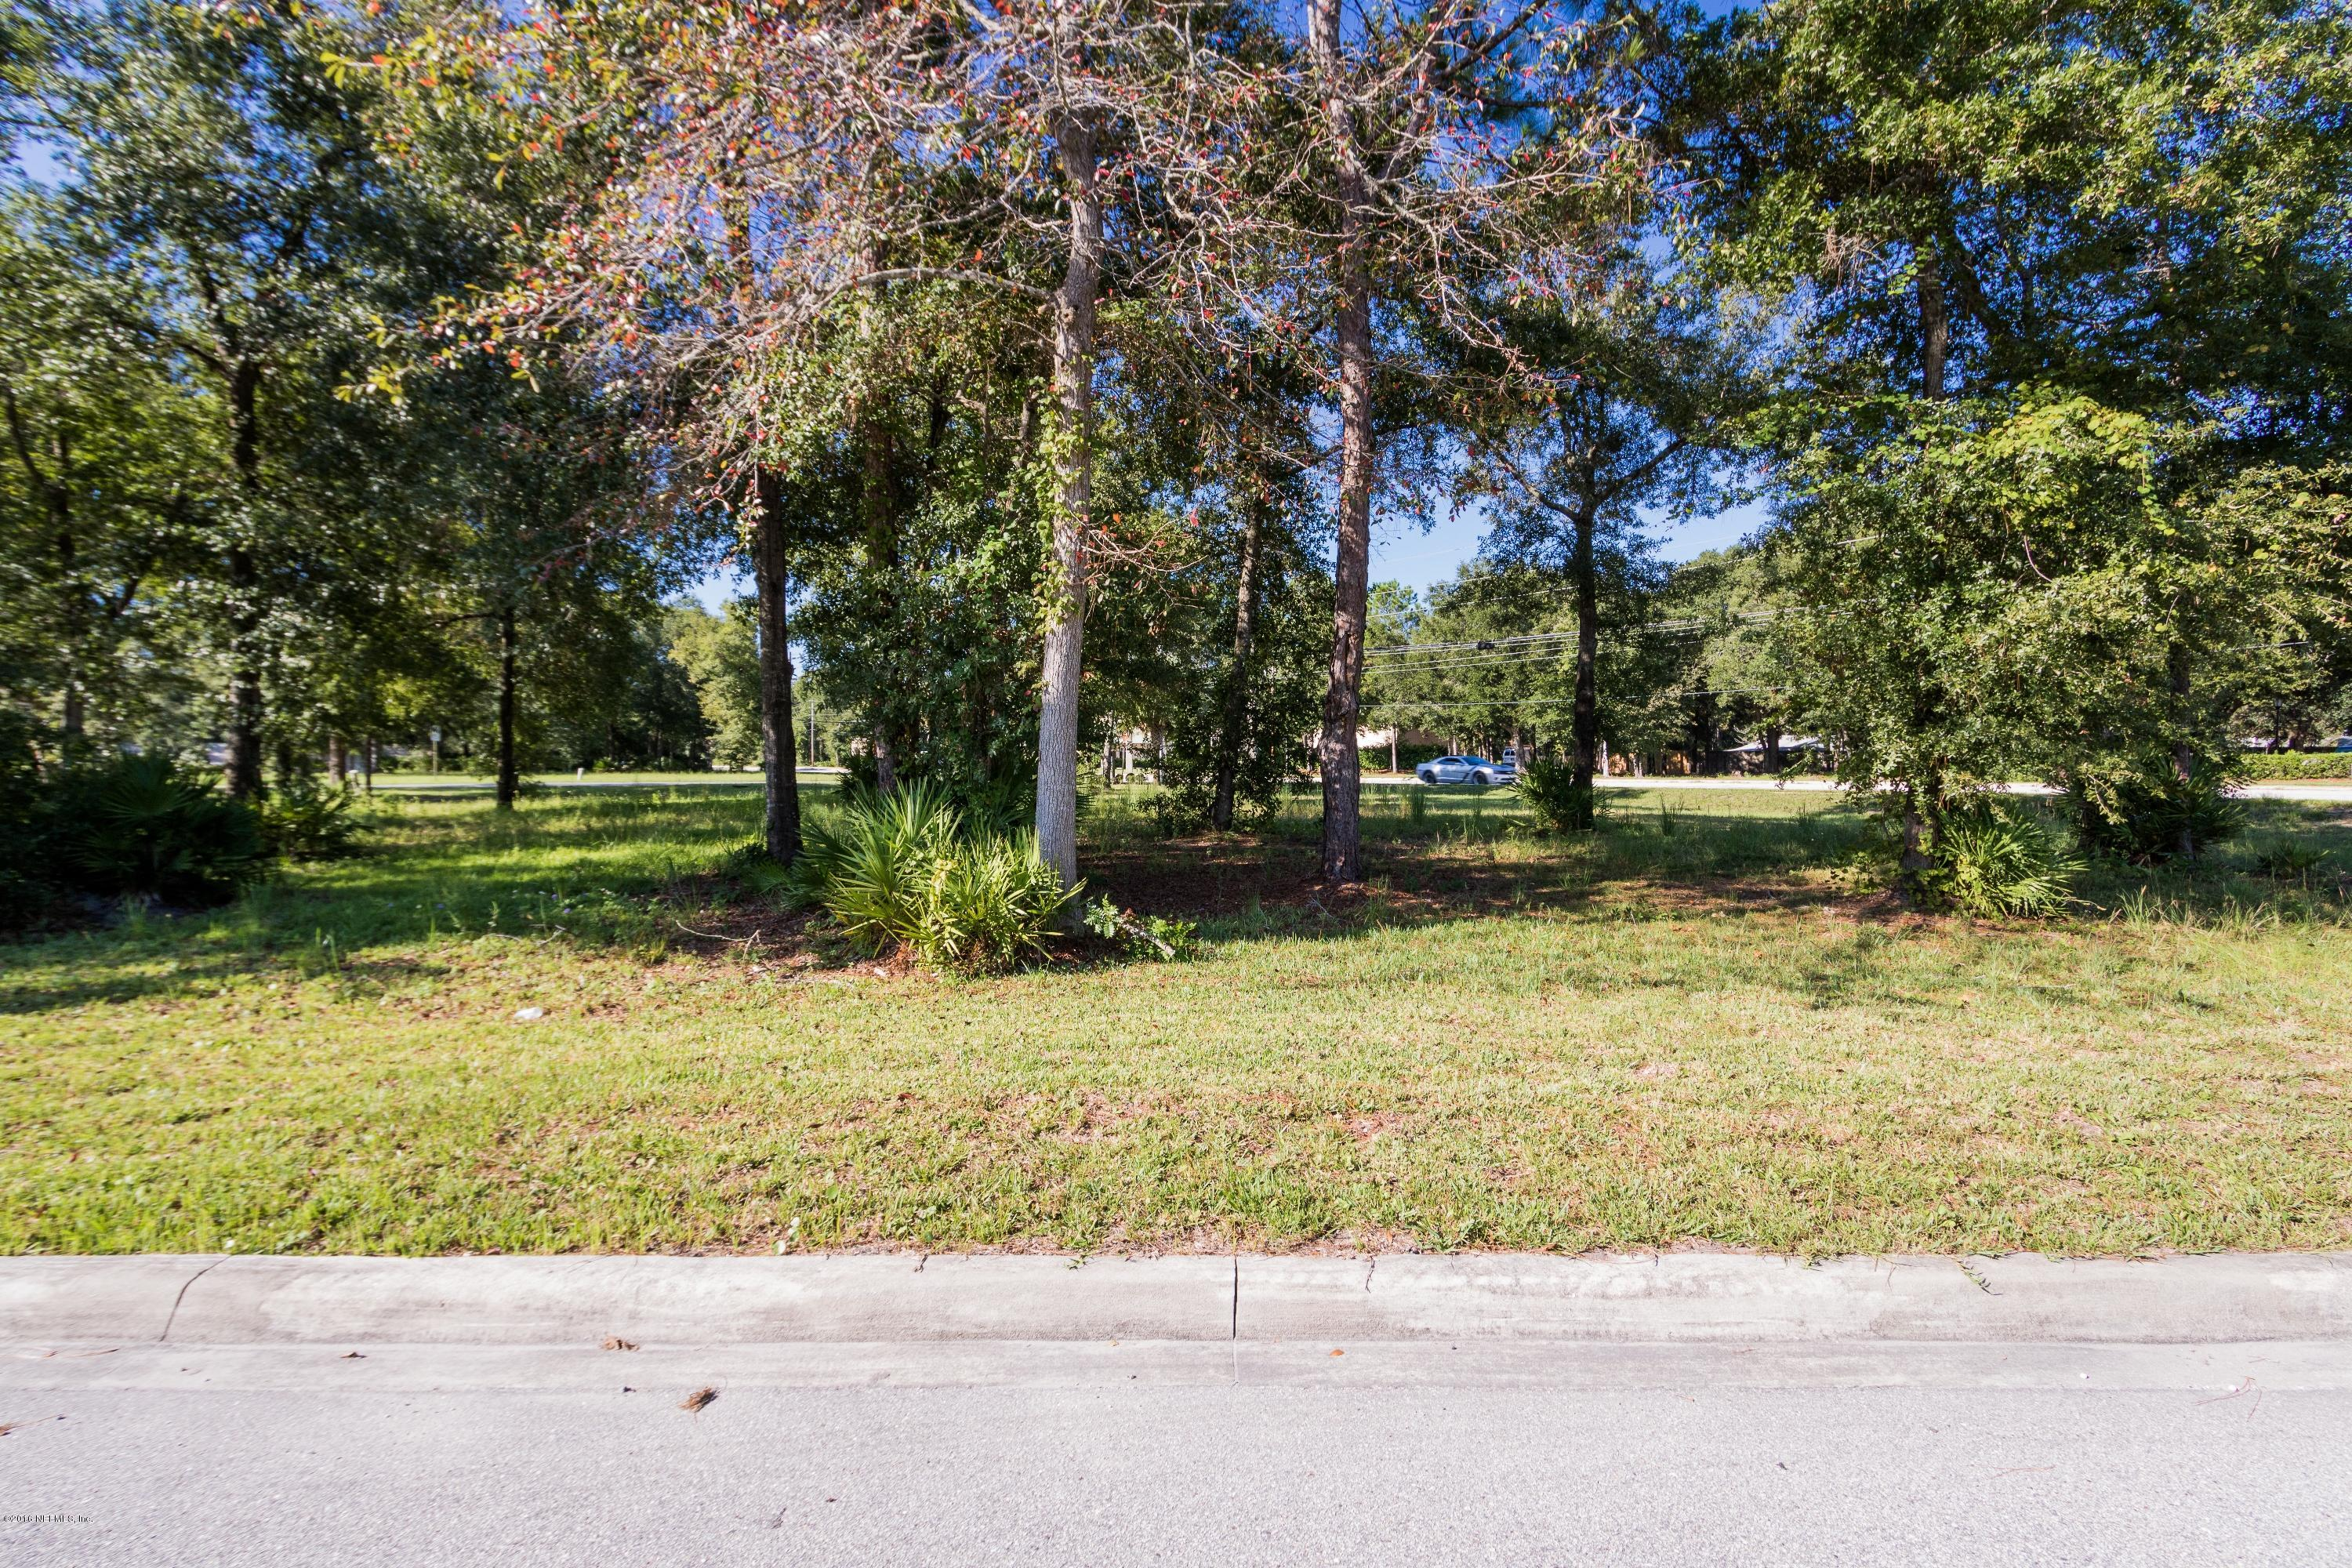 0 TUSCANY GLEN, ORANGE PARK, FLORIDA 32065, ,Commercial,For sale,TUSCANY GLEN,848744